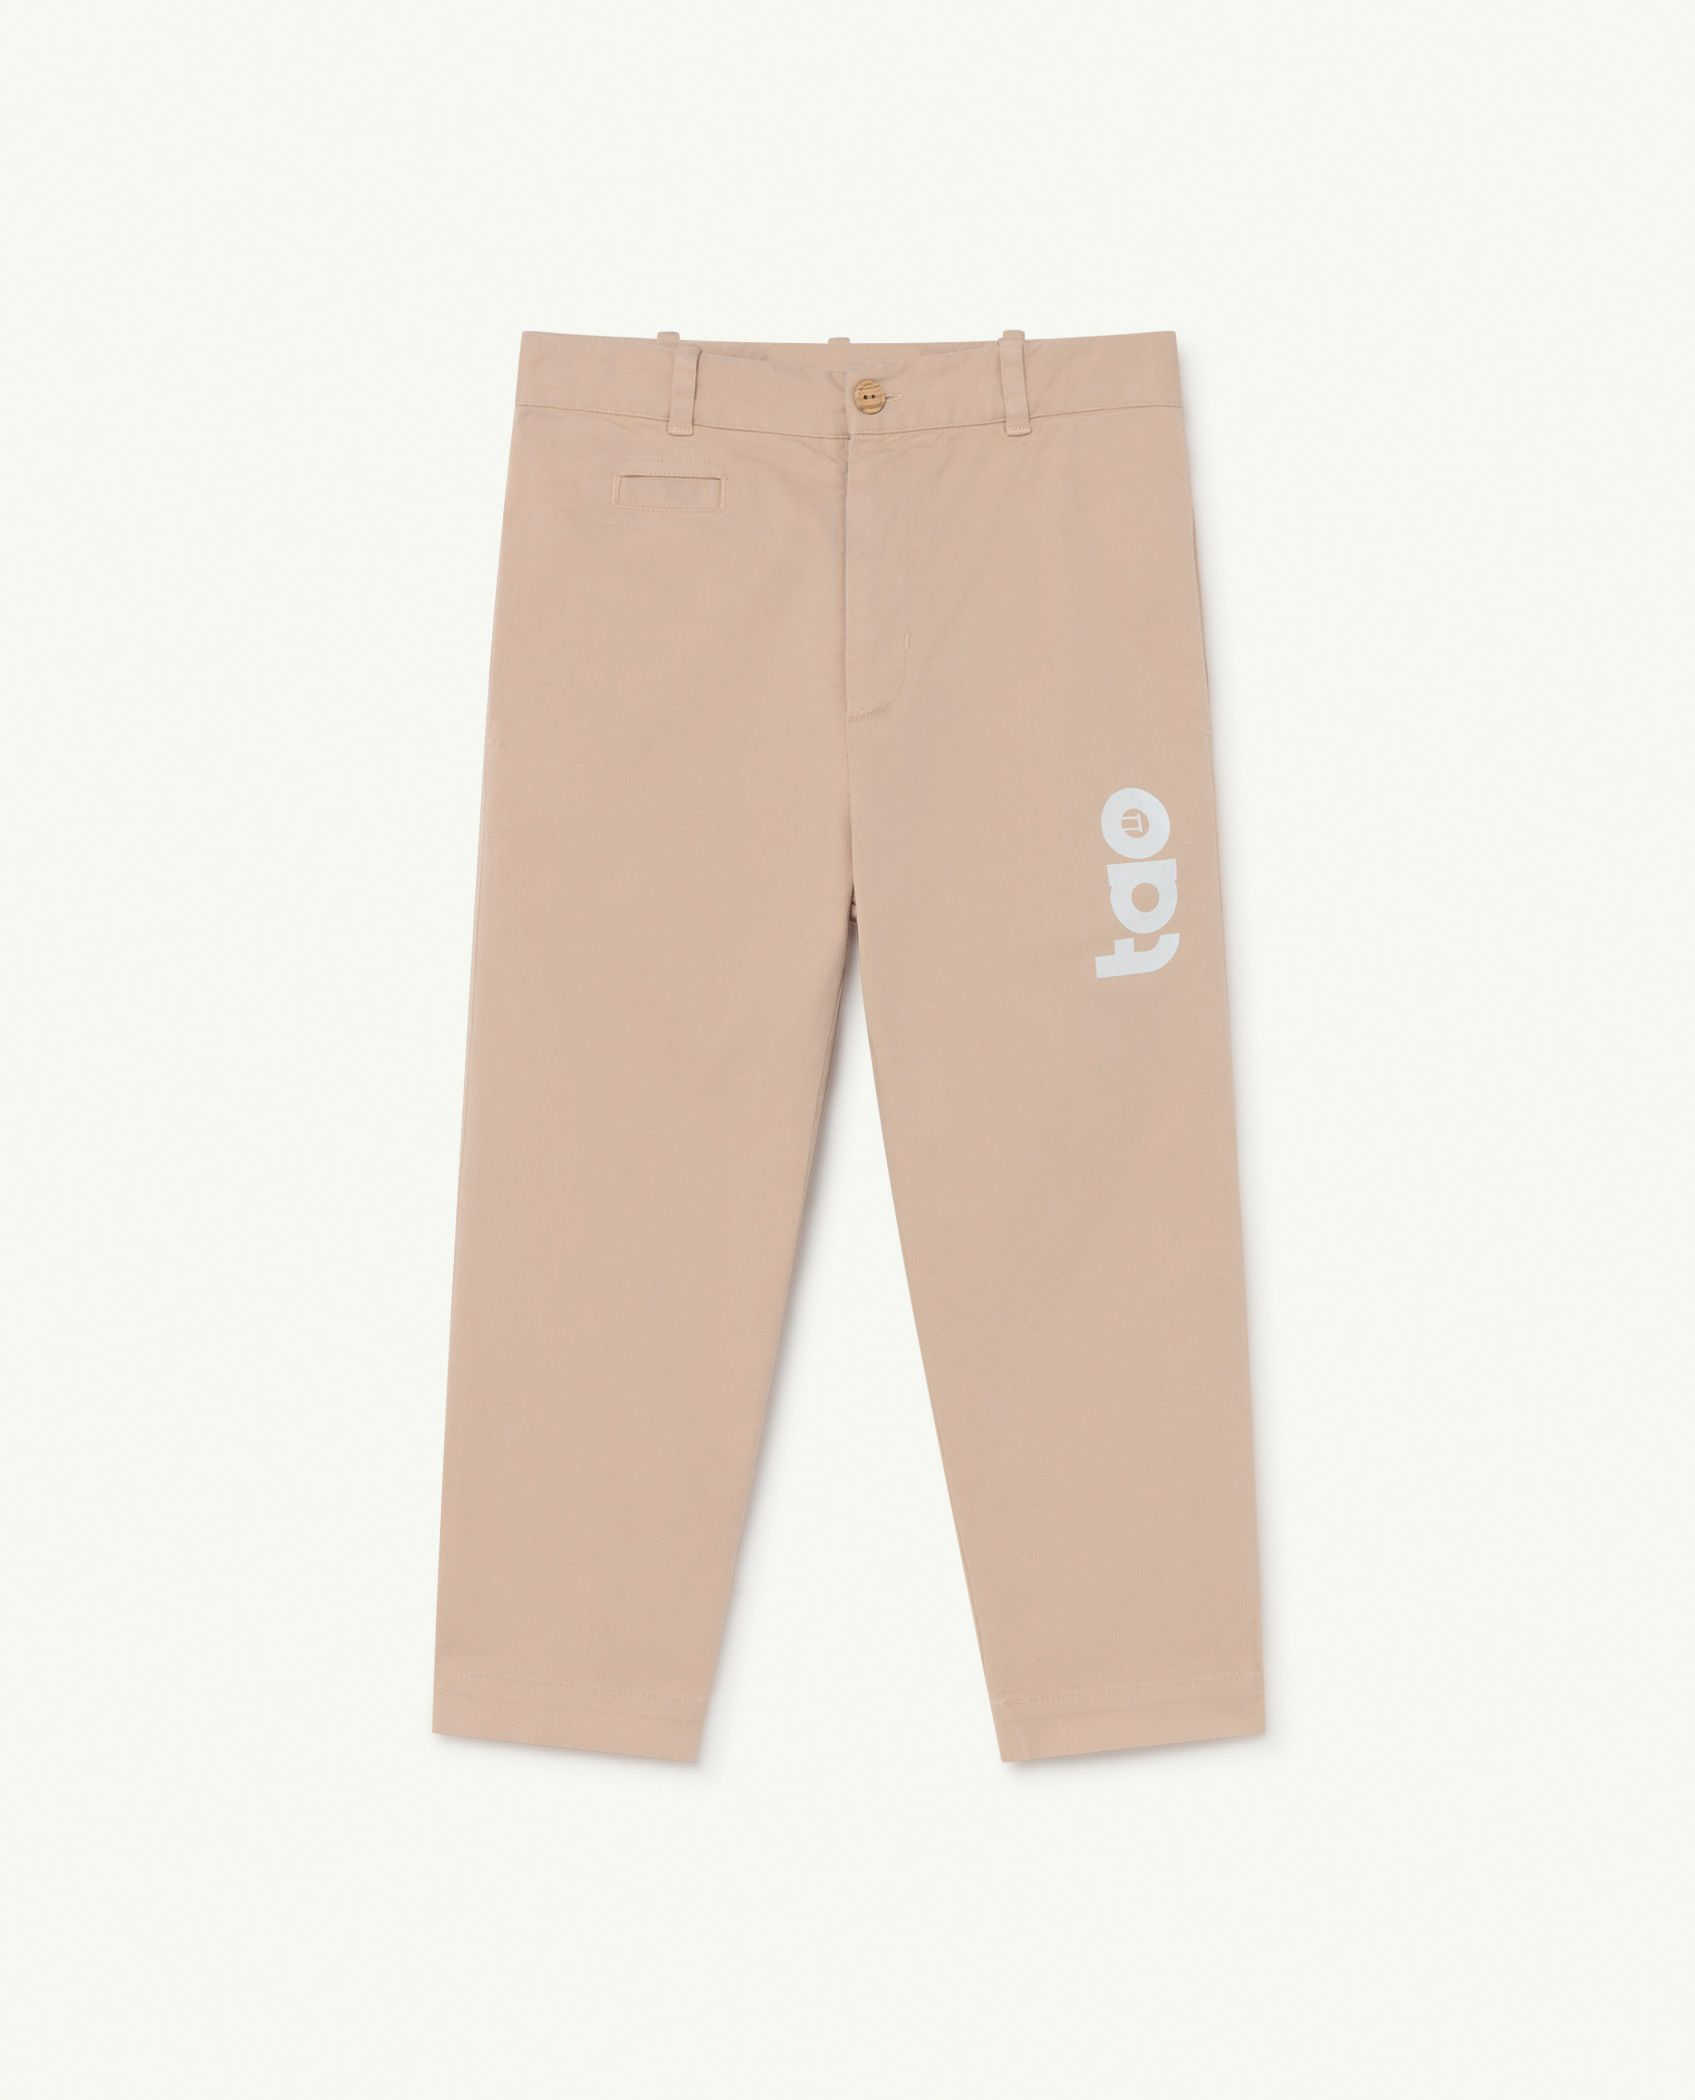 Soft Pink Logo Camel Trousers img-1